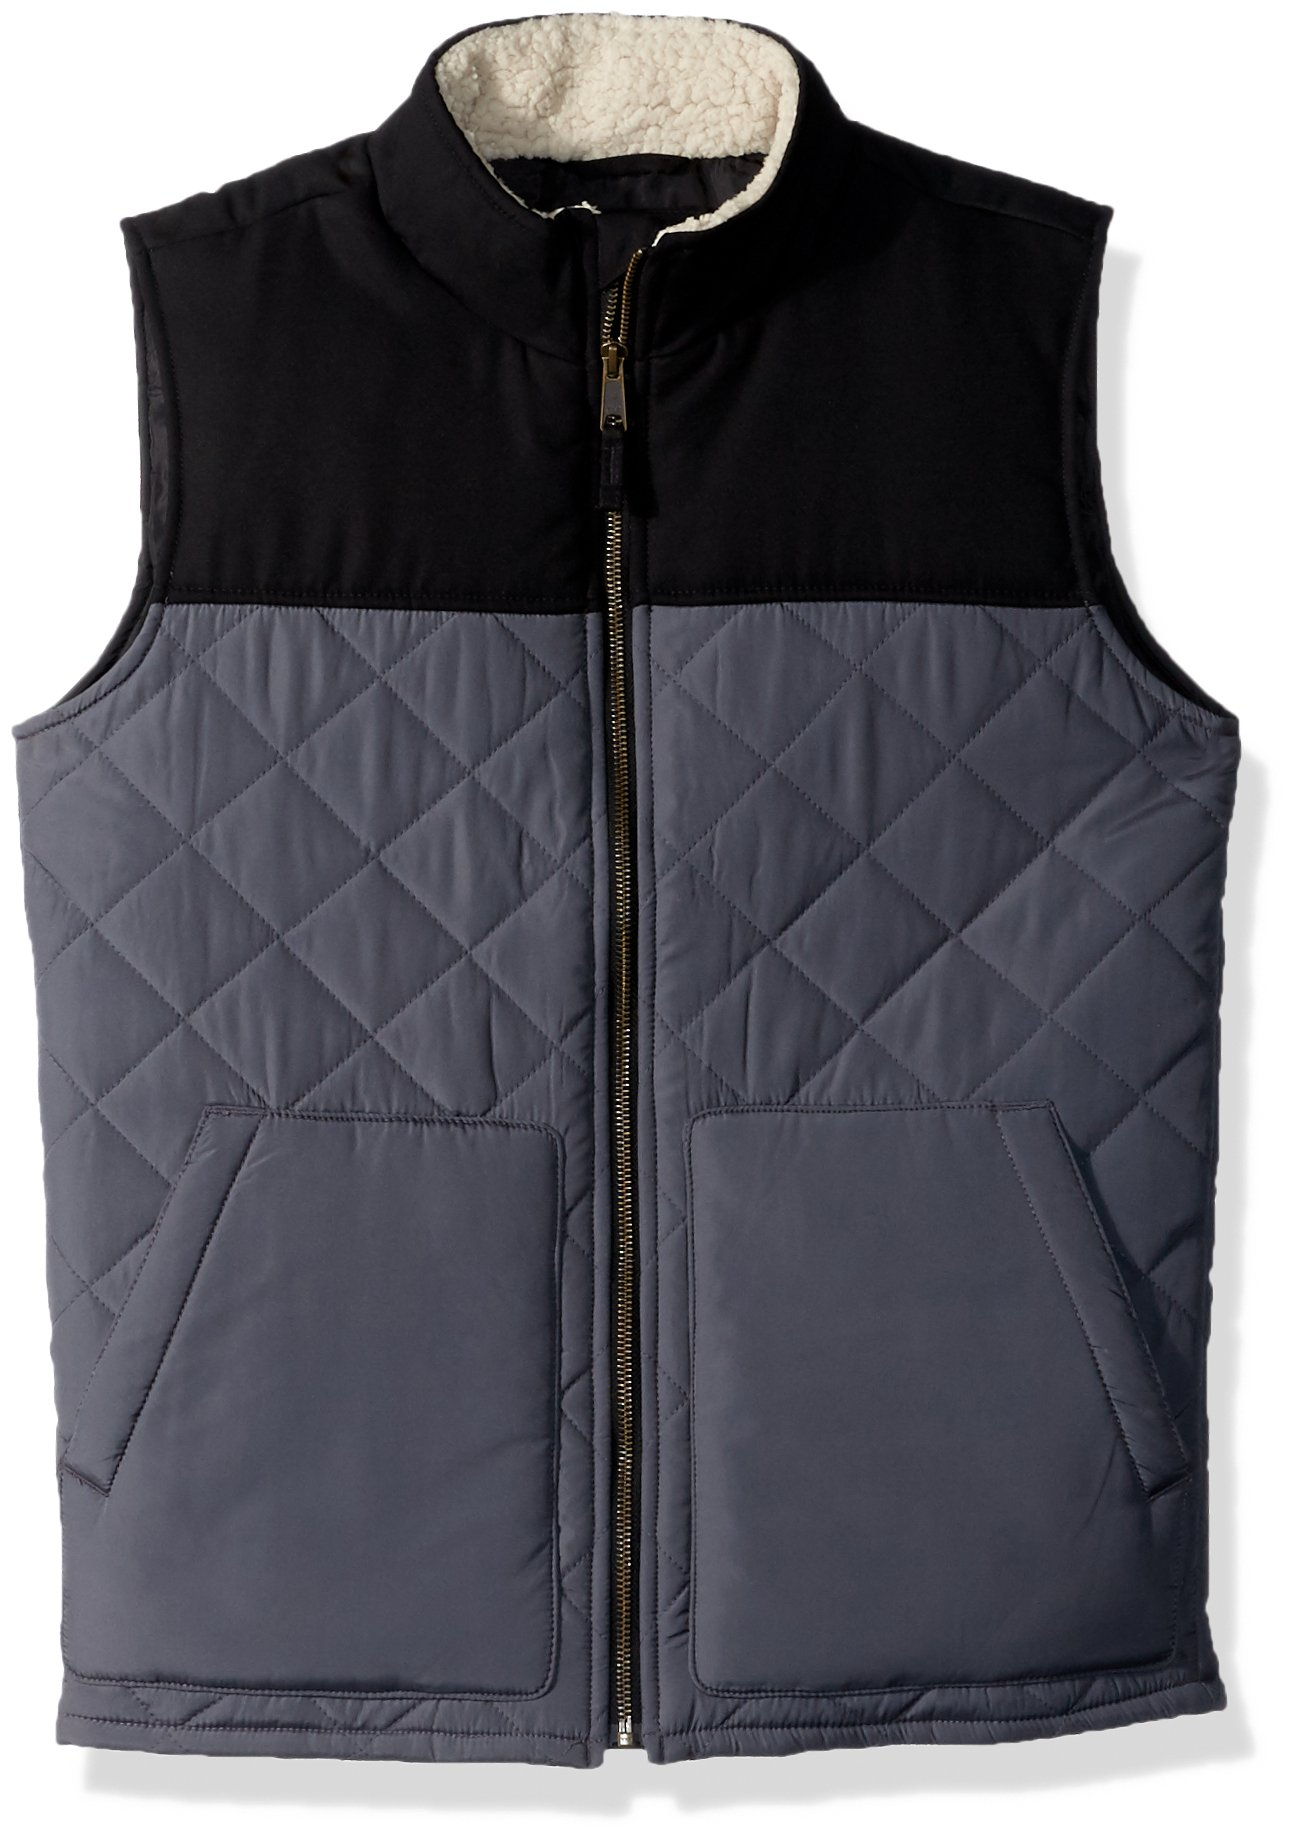 The Children's Place Boys Quilted Vest, Black, S (5/6)